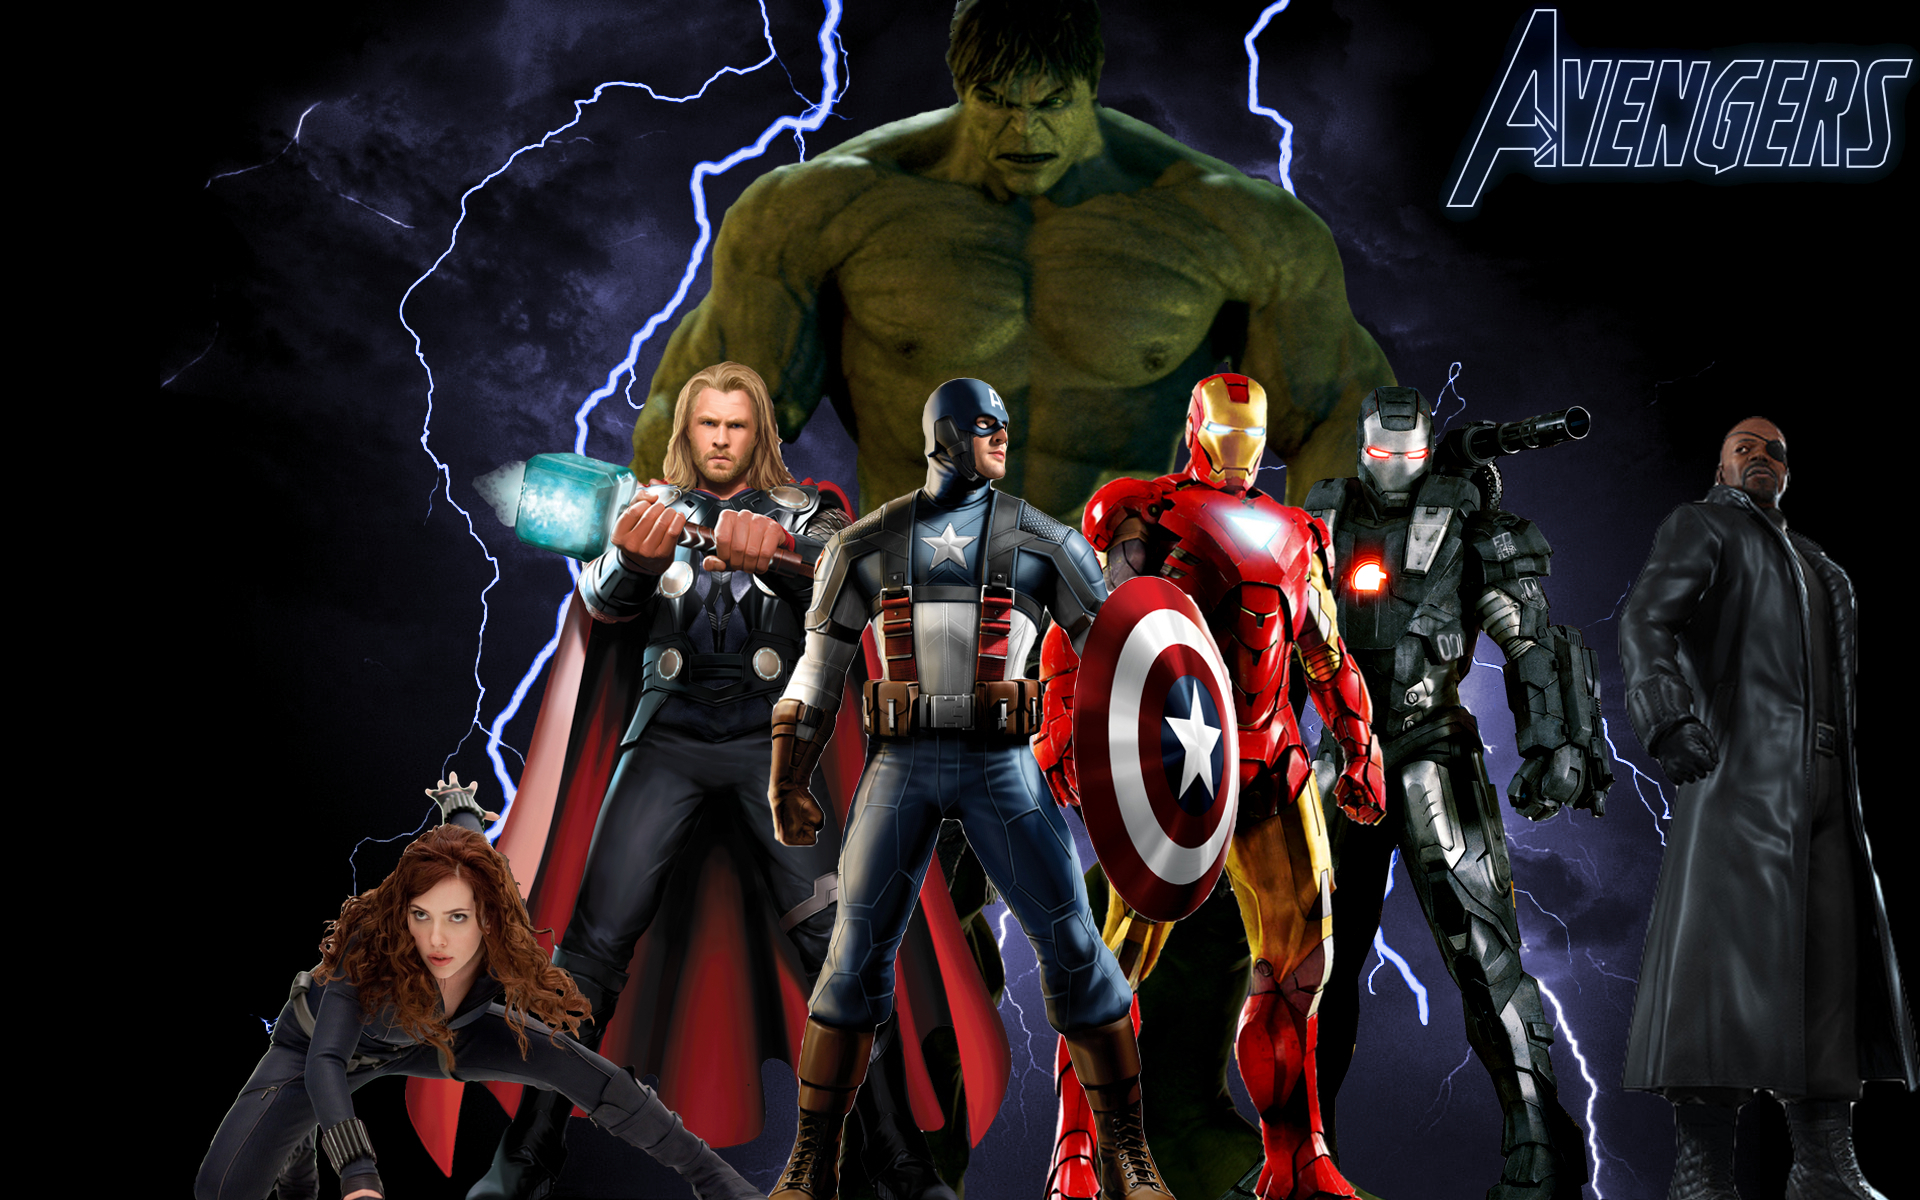 Avengers Desktop The Avengers Fan Art 12873866 Fanpop